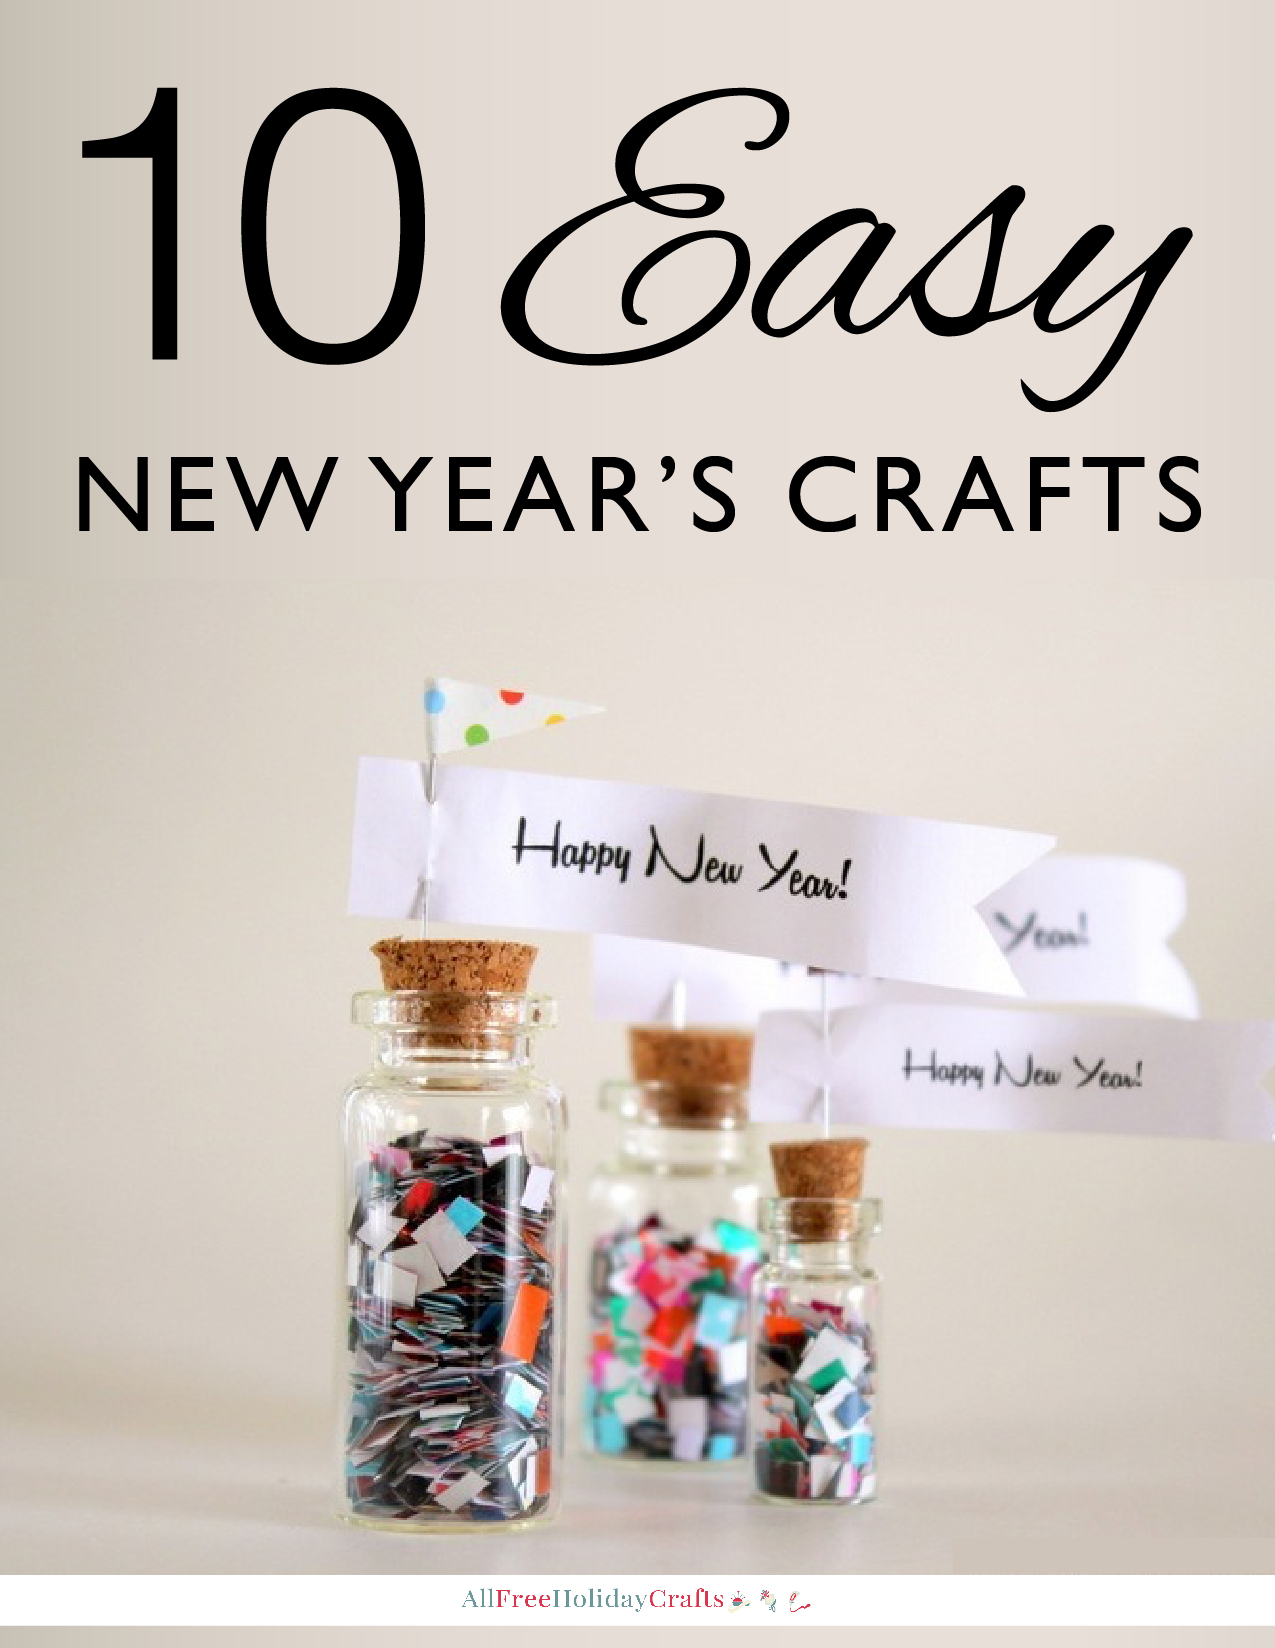 10 Easy New Year's Crafts eBook